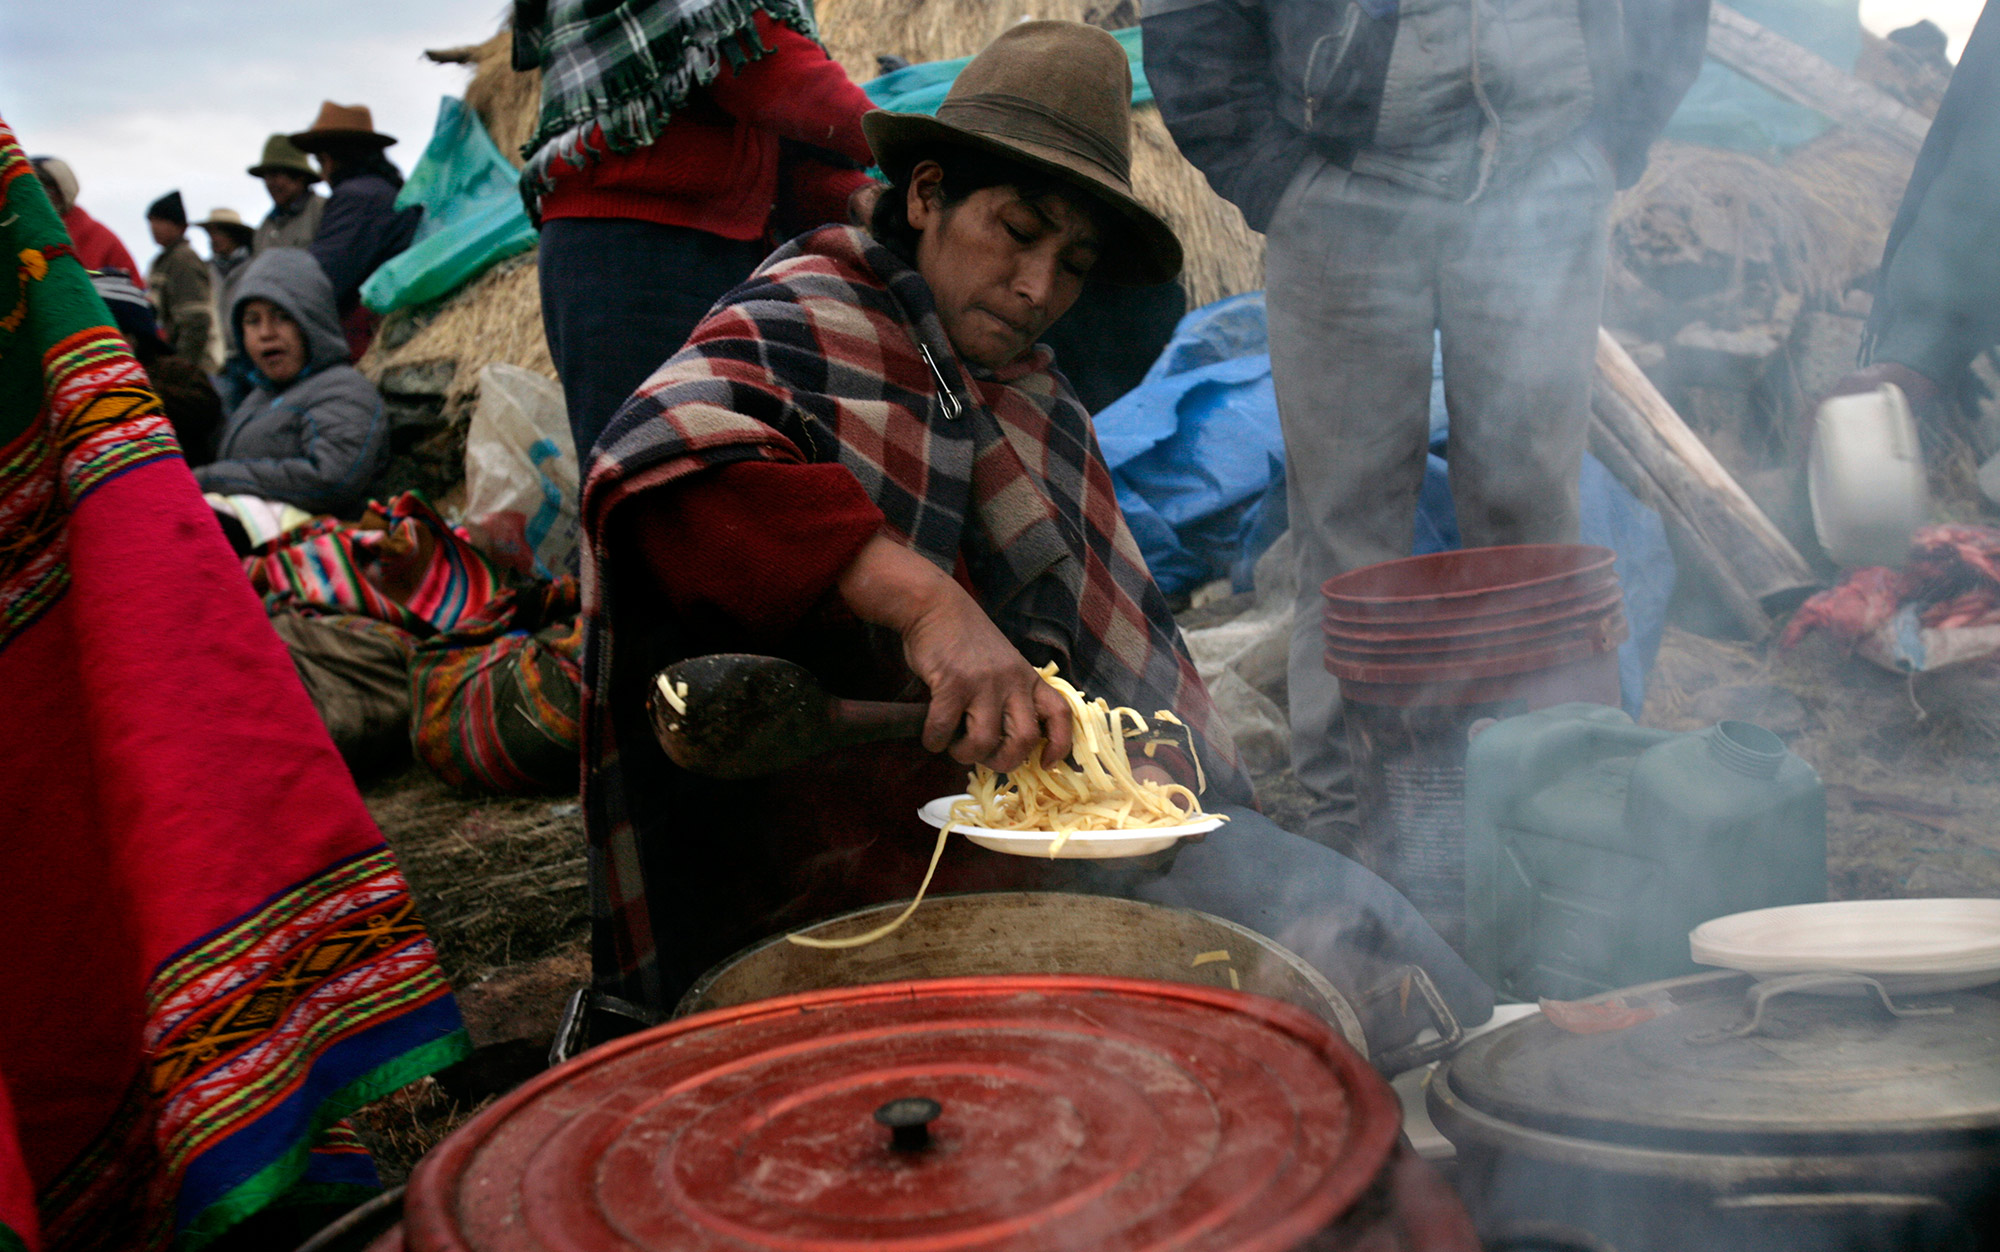 Cooking for  Yawar Fiesta celebration in the Peruvian Andes. Photo by  Karla Gachet/Panos